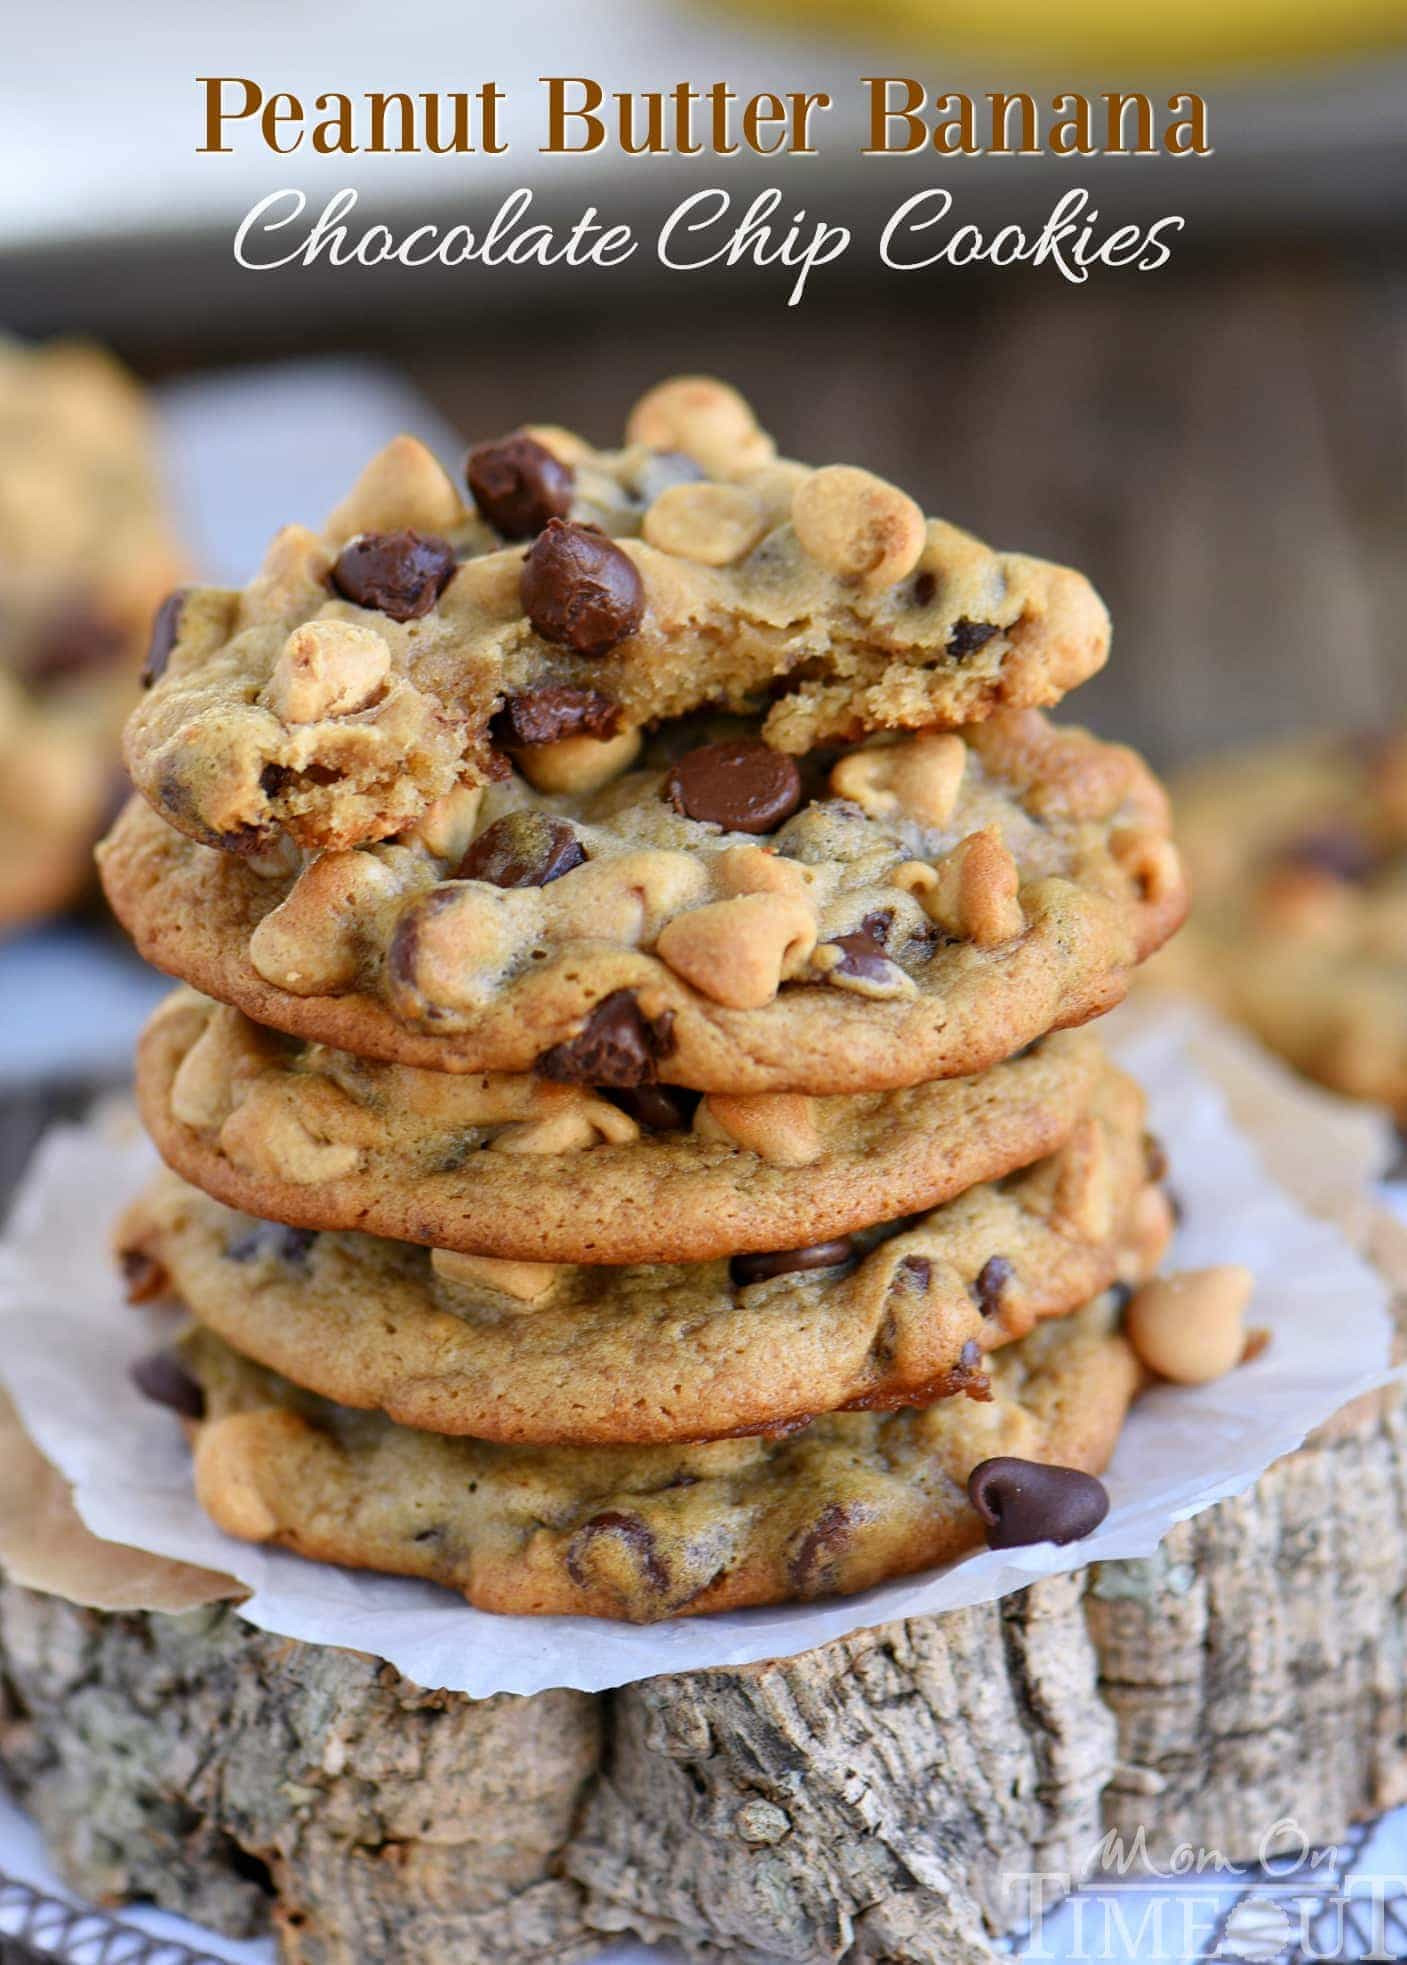 Peanut Butter Banana Cookies  Peanut Butter Banana Chocolate Chip Cookies Mom Timeout